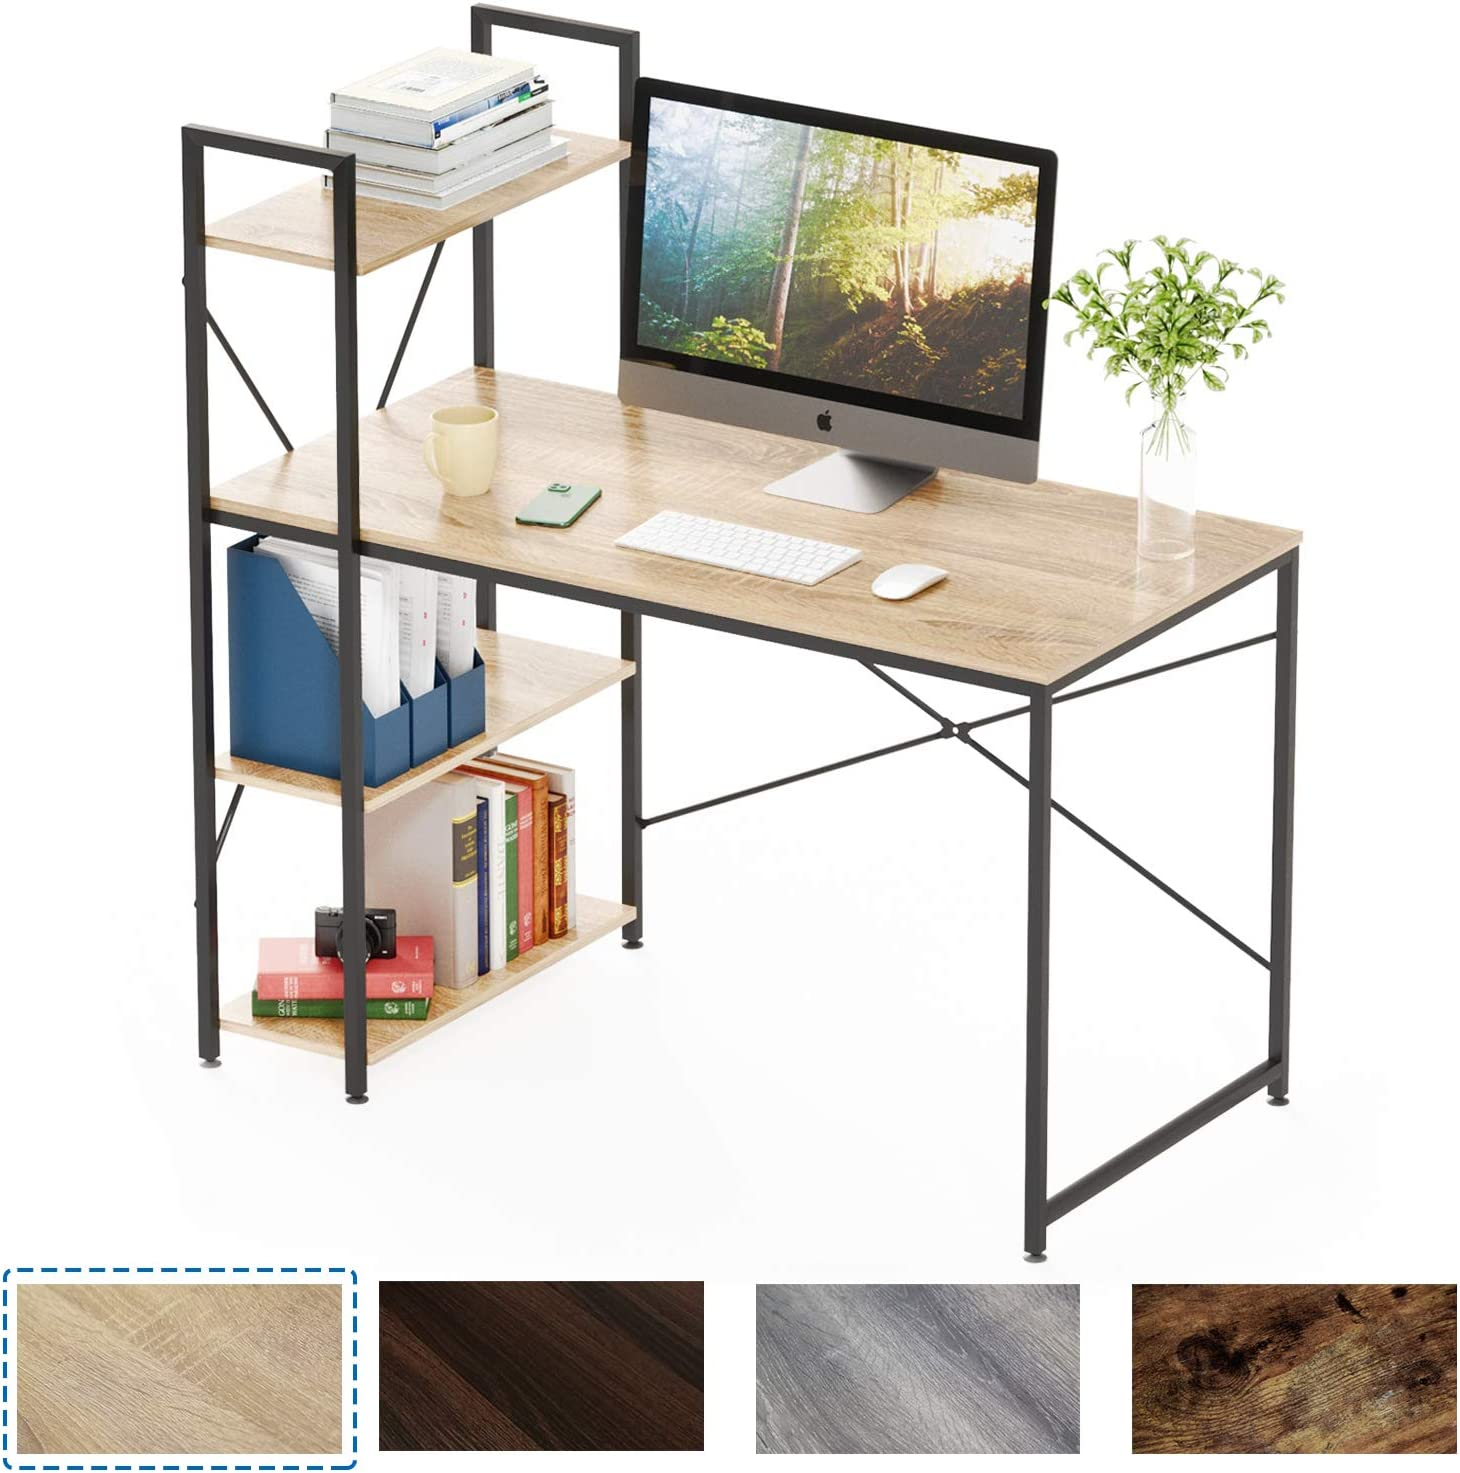 Bestier Computer Desk with Shelves,Writing Desk with Storage Bookshelf  Reversible Study Table Office Corner Desk with Shelves Home Office Desk  with